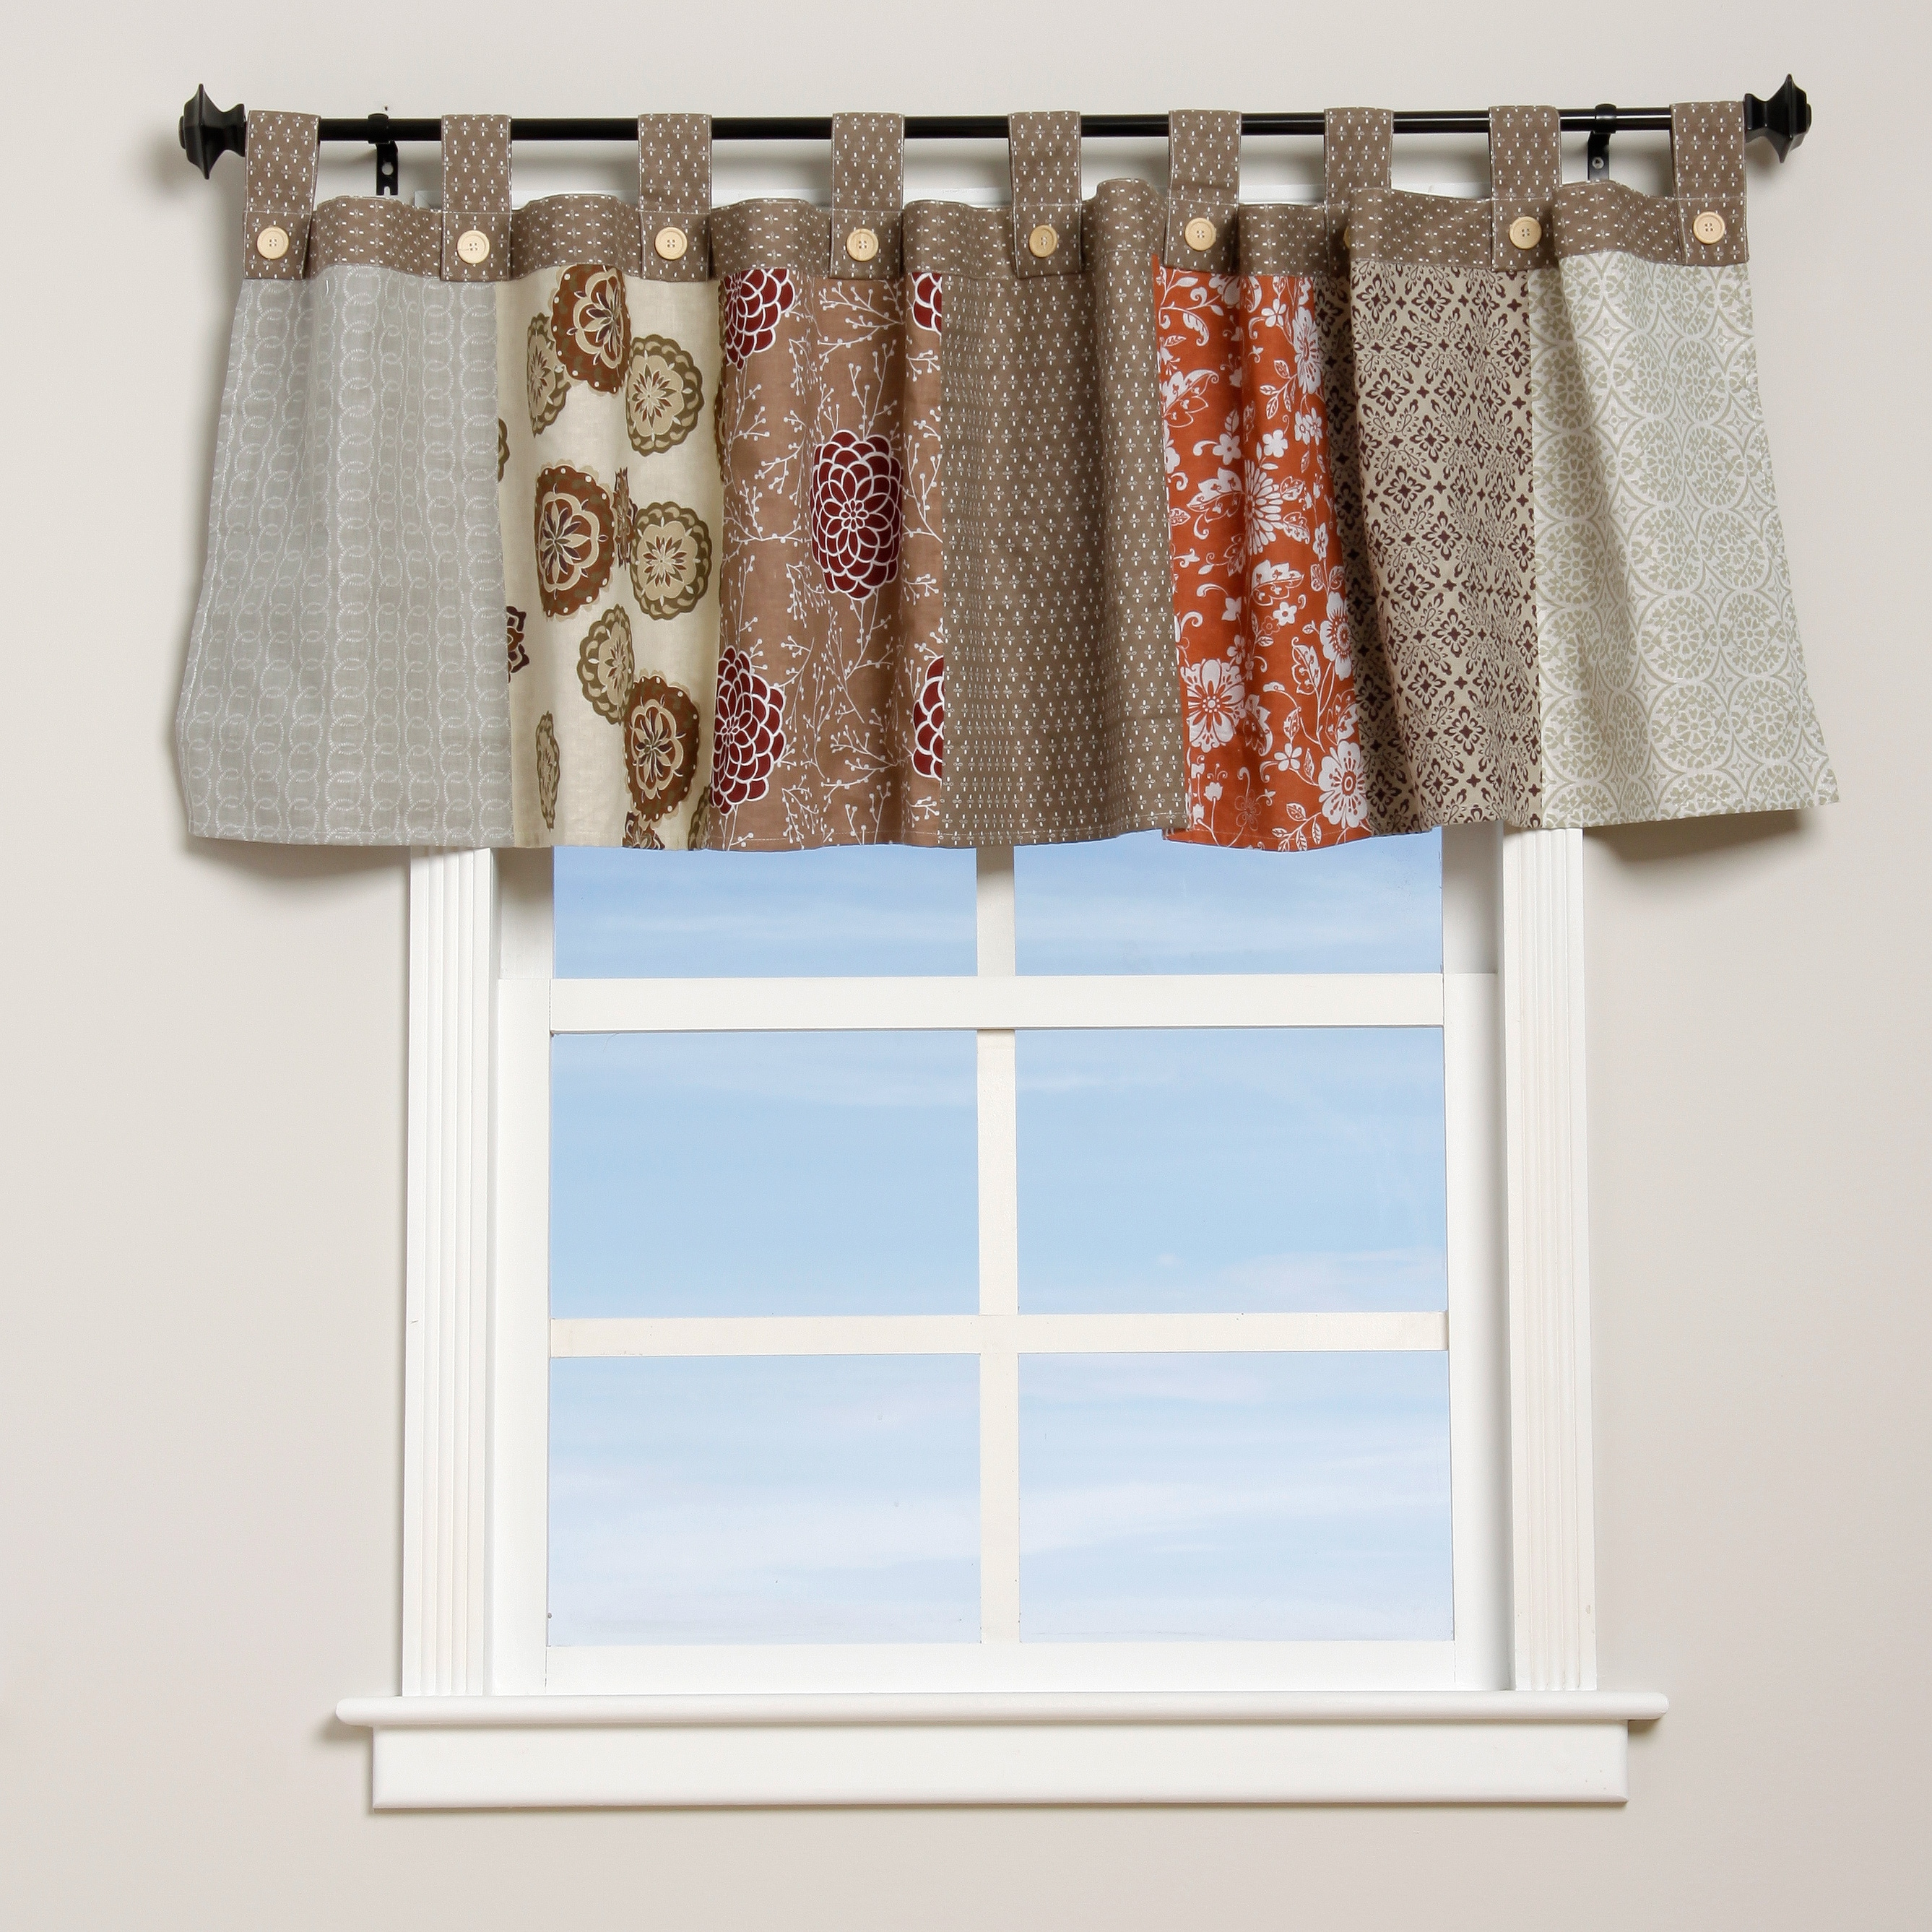 traditions valance damask dp by com up kitchen poppy waverly ascot home amazon dressed blue inch